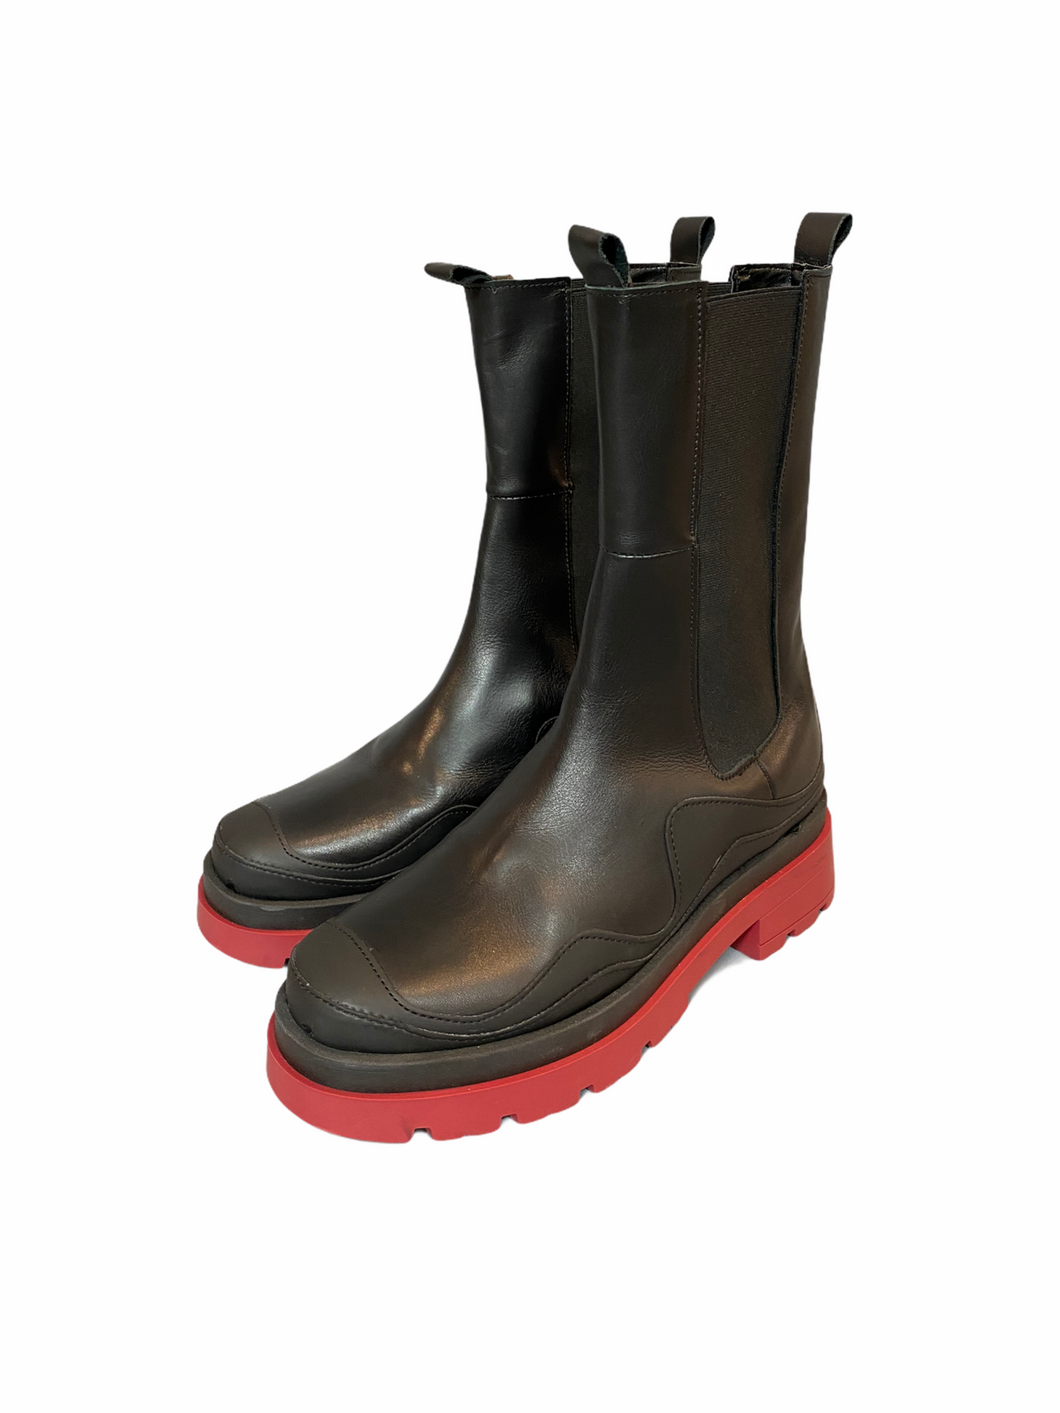 Leather boots with red rubber sole